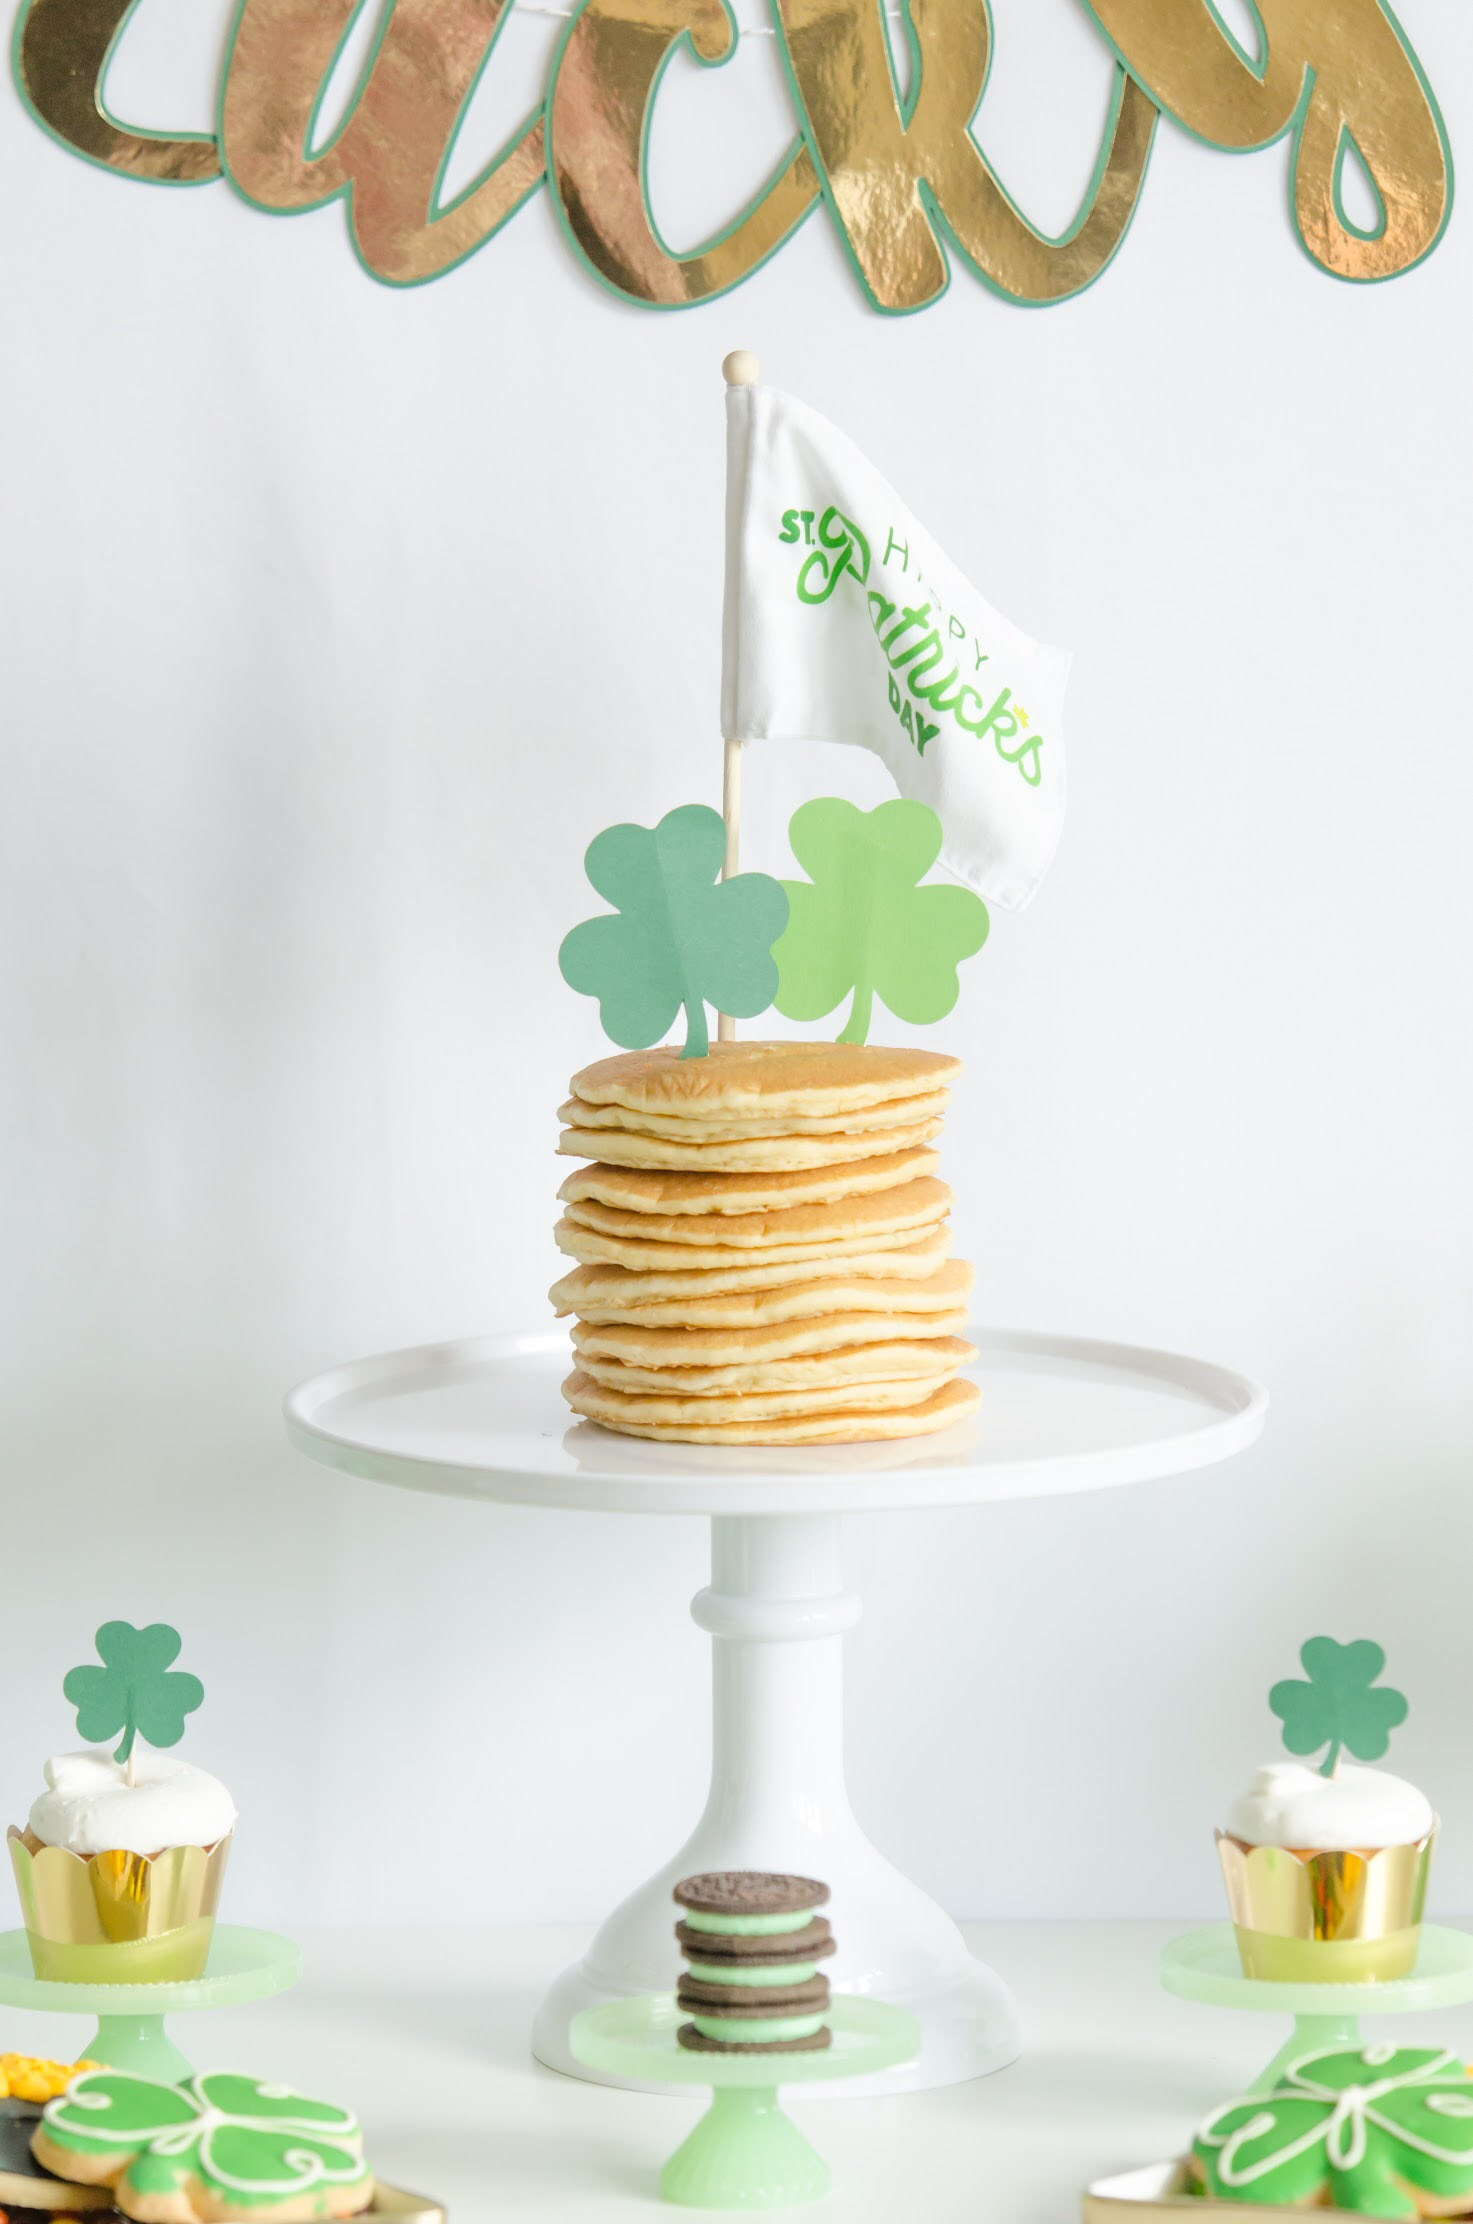 These stacked pancakes take center stage at this Saint Patricks Day Breakfast from Mint Event Design www.minteventdesign.com #partyideas #partydecorations #breakfastfood #saintpatricksday #stpatricksday #pancakes